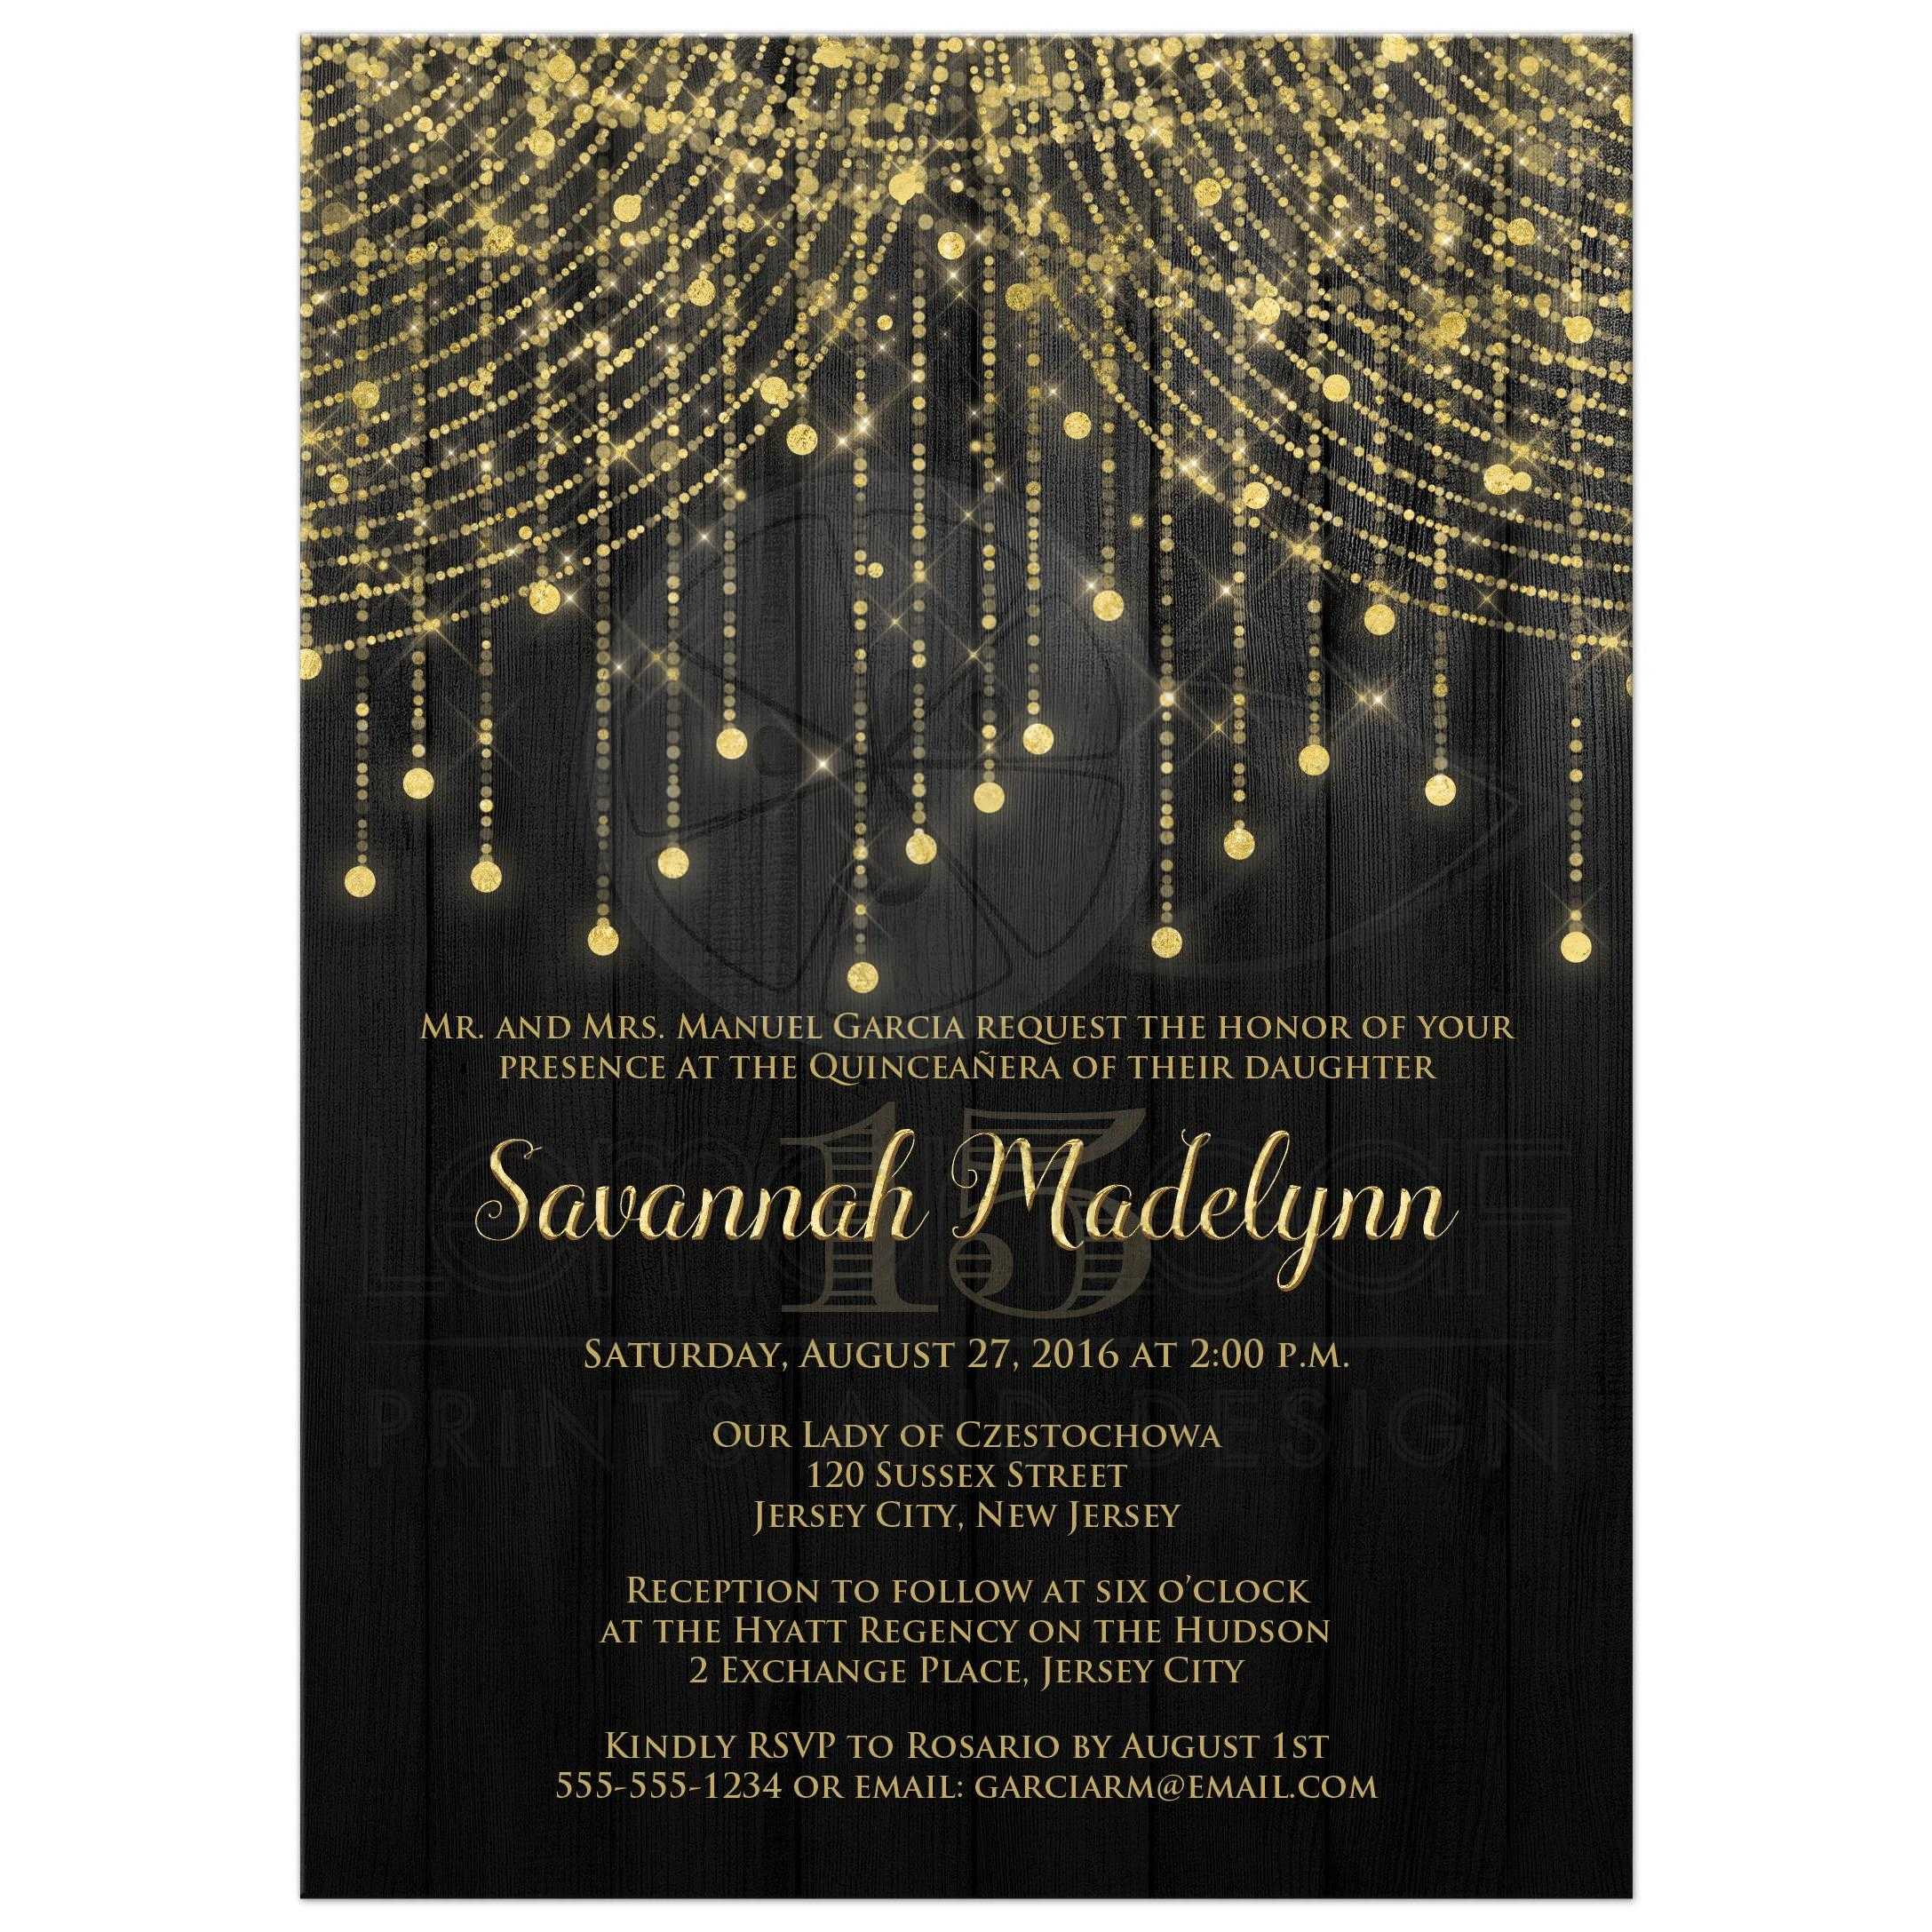 Quinceañera Invitation | Black and Gold Twinkle Light Cascades